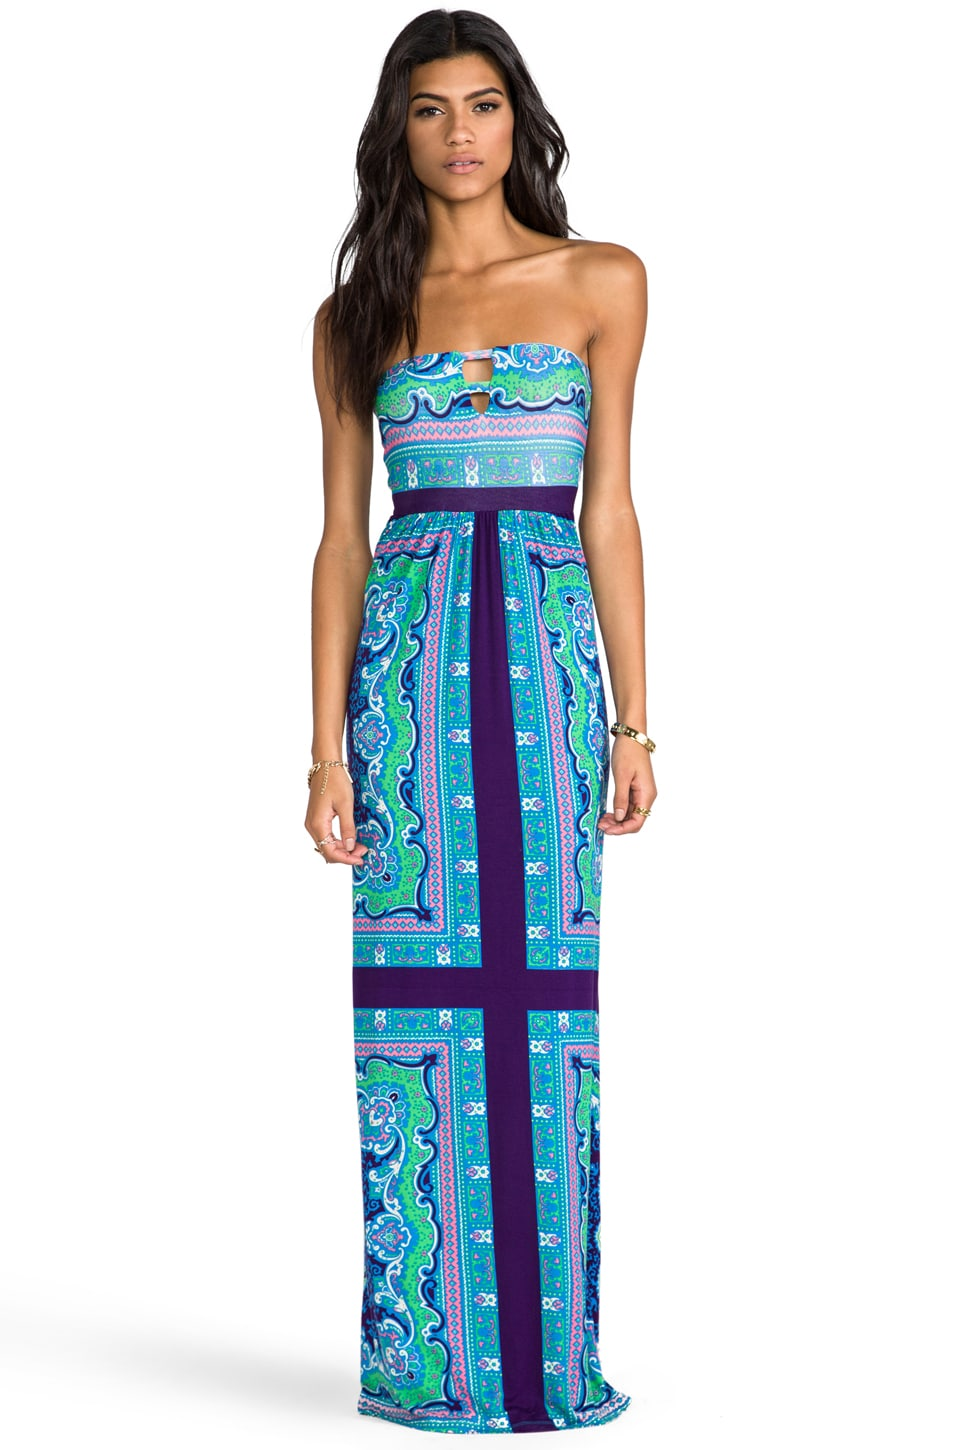 Lovers + Friends PS I Love You Dress in Scarf Print